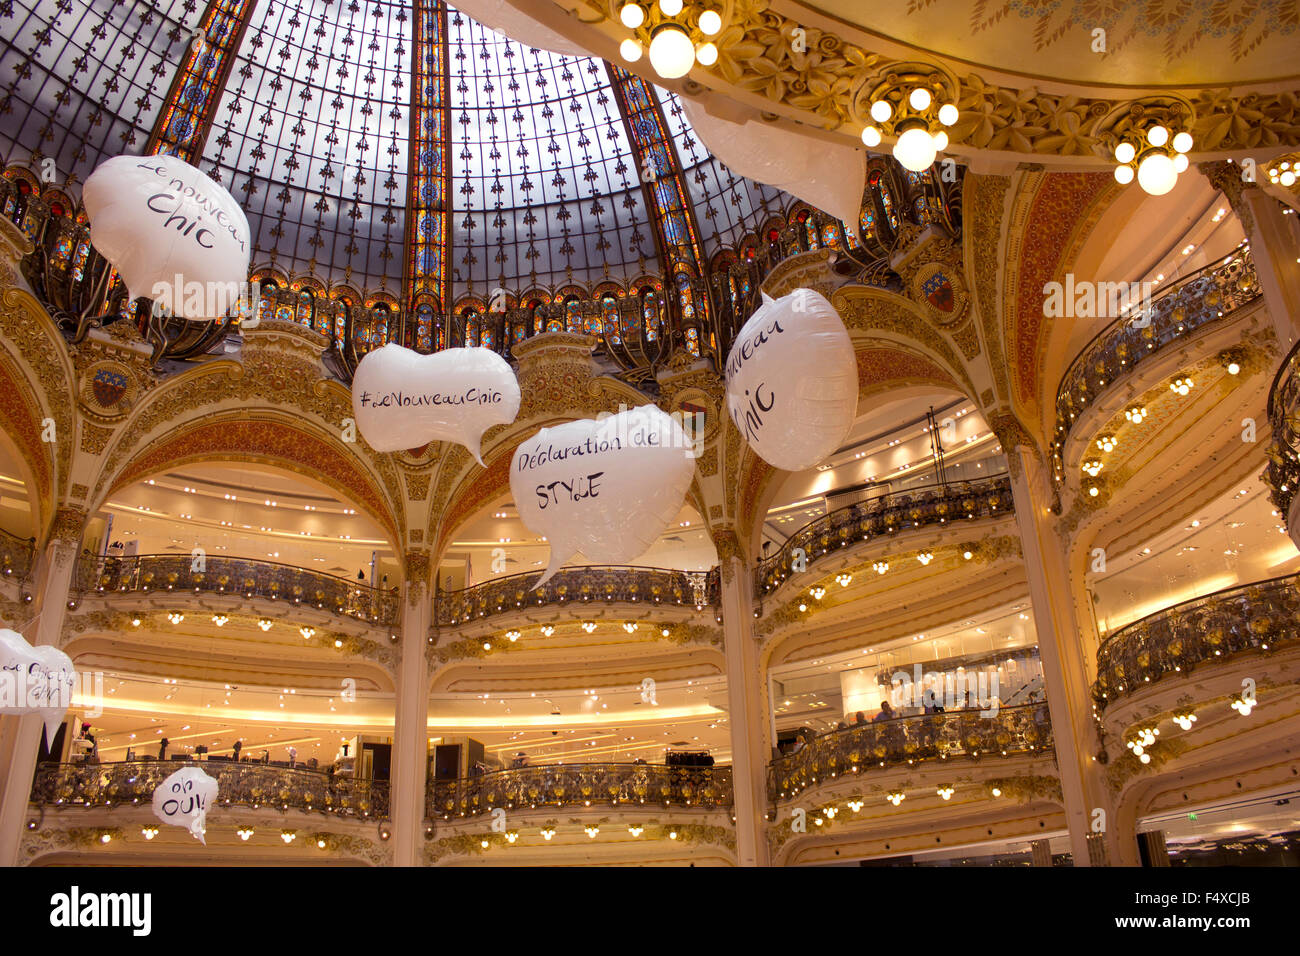 Galeries Lafayette department store on Blvd Haussman in Paris, France in the 9th arrondissement. - Stock Image